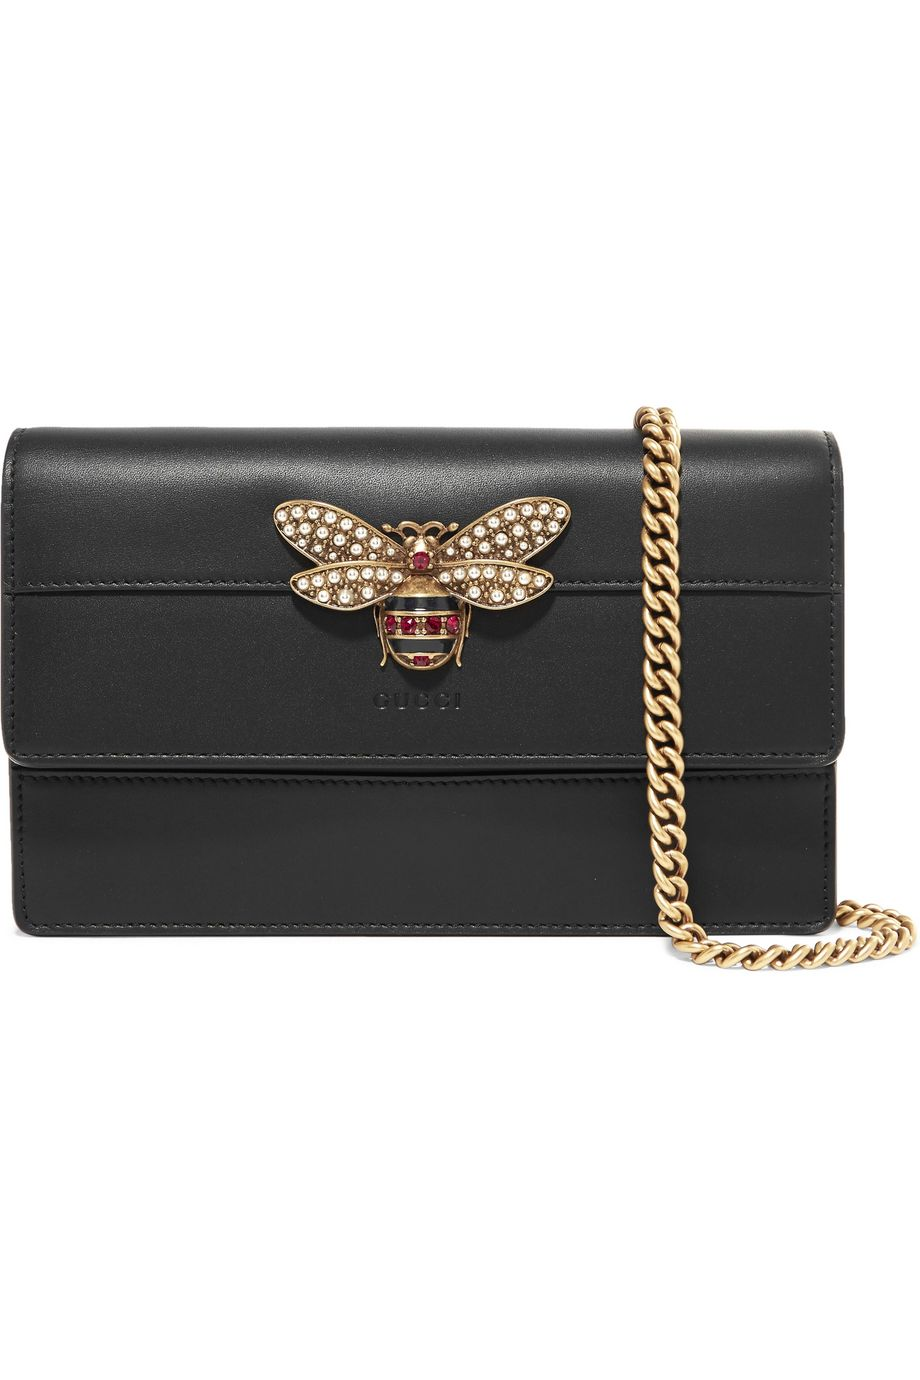 Gucci Queen Margaret embellished leather shoulder bag